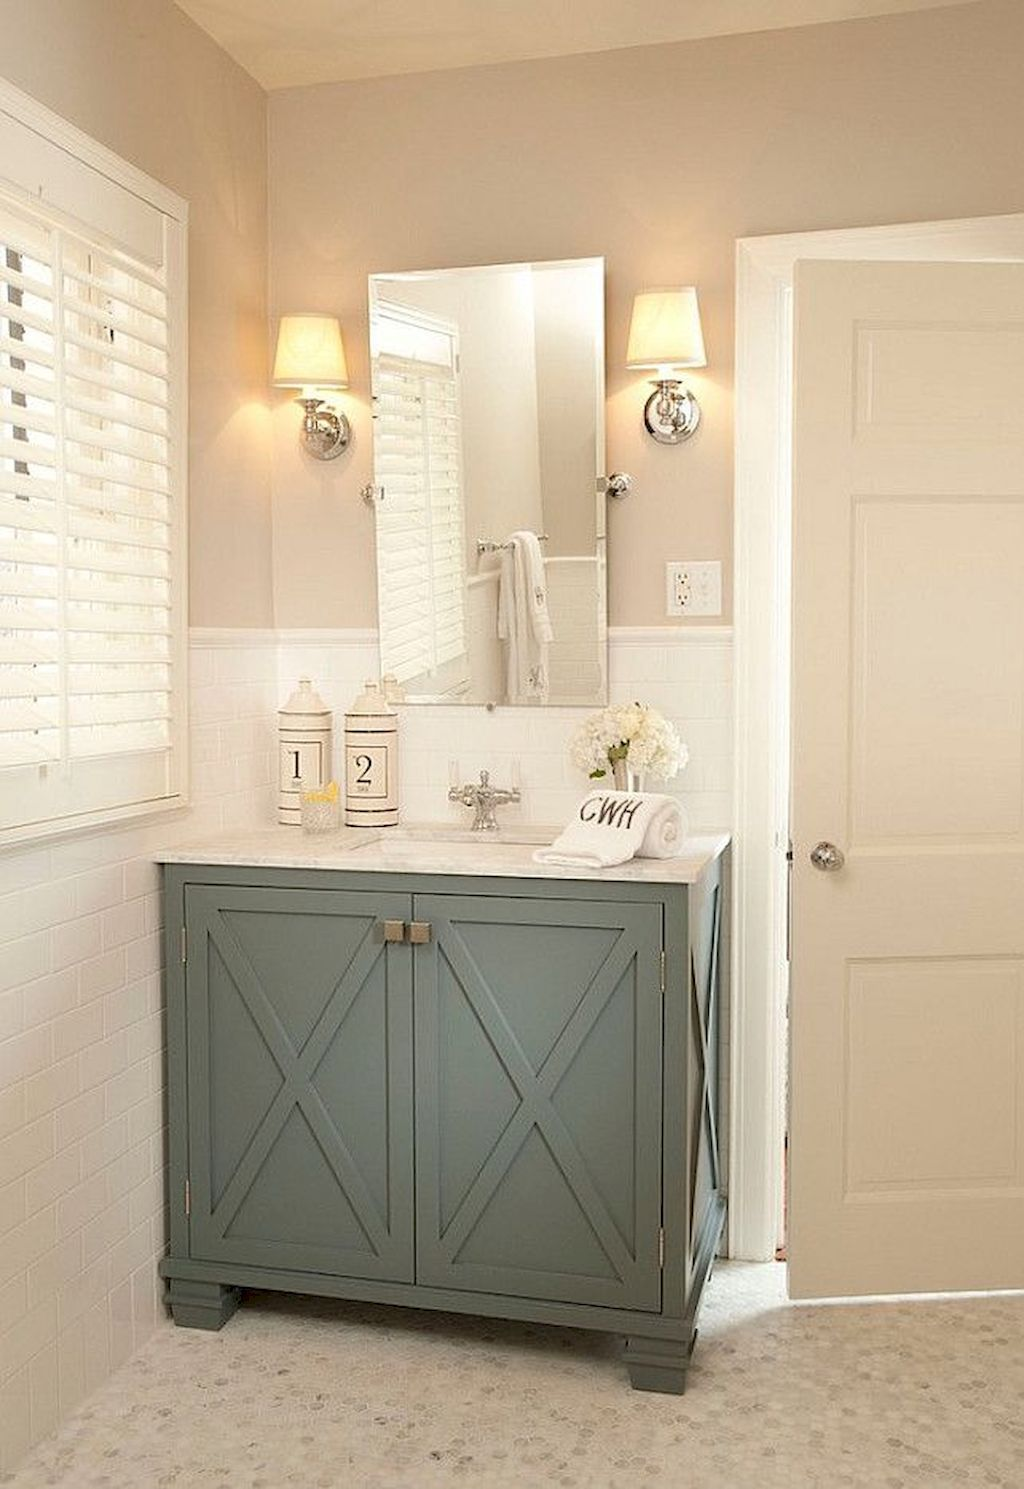 Free standing bathroom cabinets ideas 41